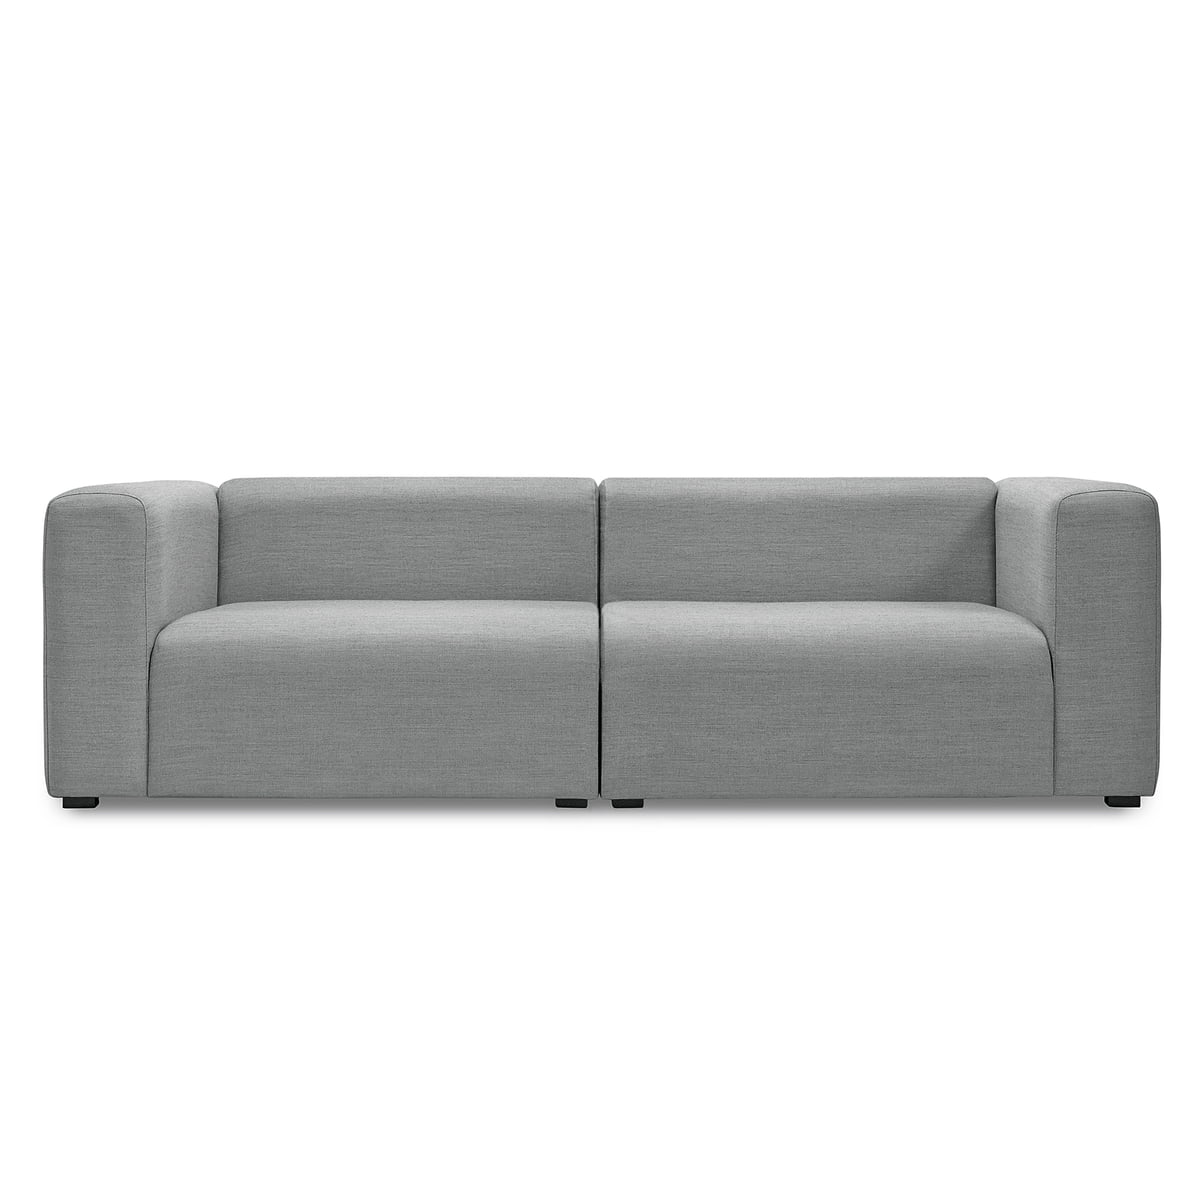 Mags Sofa 2 5 Seater Hay